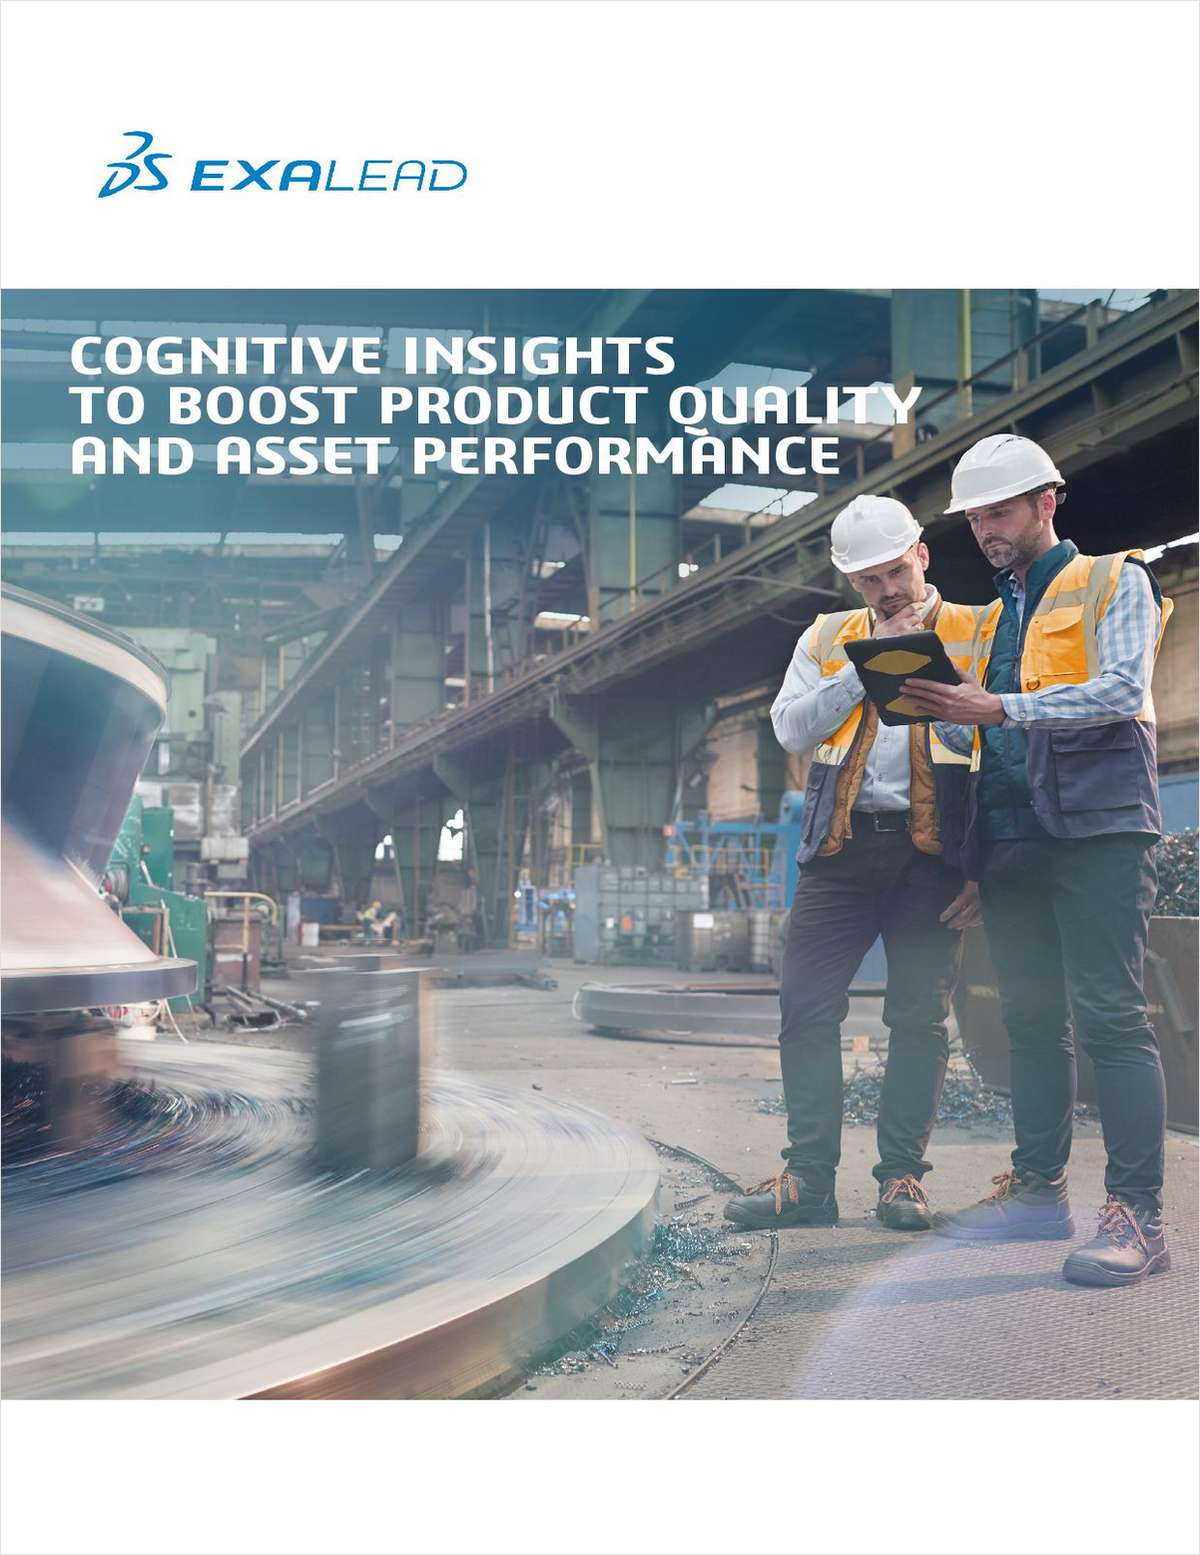 Cognitive Insights To Boost Product Quality And Asset Performance